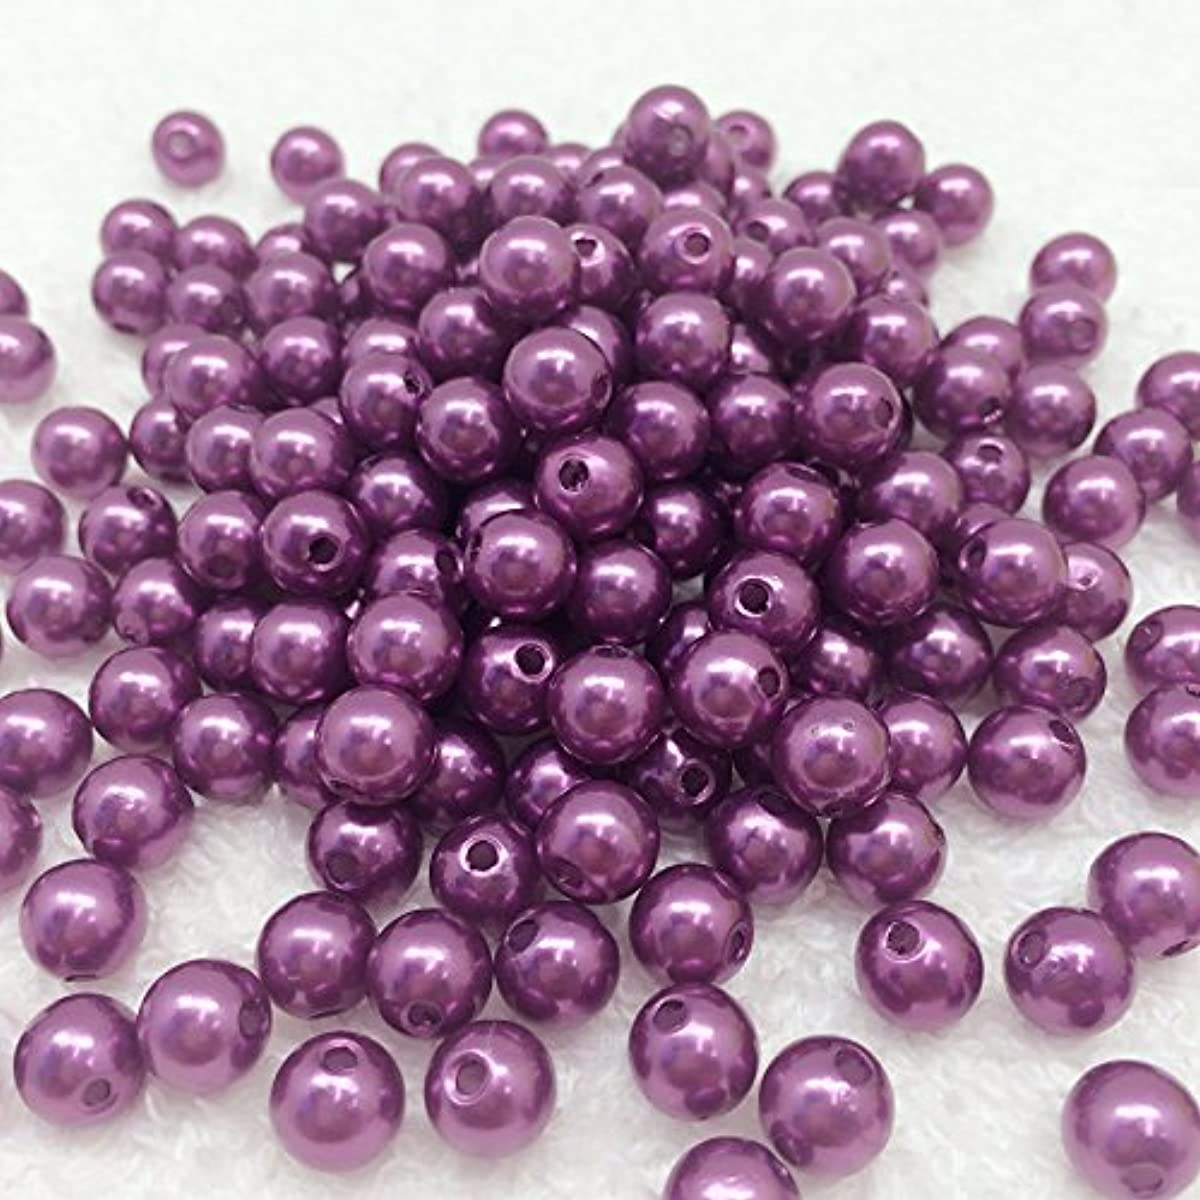 PEPPERLONELY 50 Grams (Apprx 190 PC) Acrylic Faux Pearl Beads 8mm(5/16 Inch), Purple